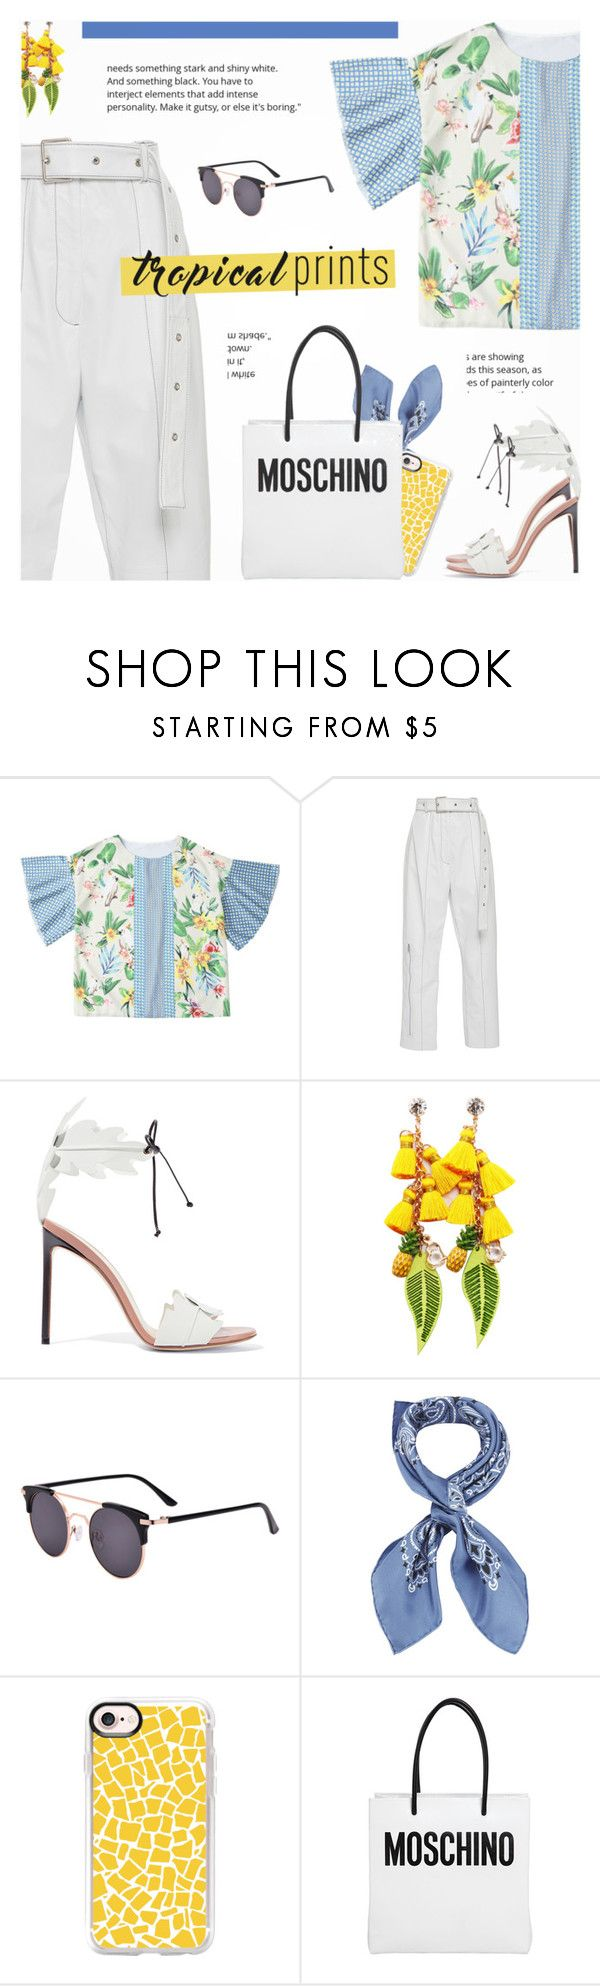 """Tropical Prints"" by novalikarida ❤ liked on Polyvore featuring Francesco Russo, Manipuri, Casetify and Moschino"